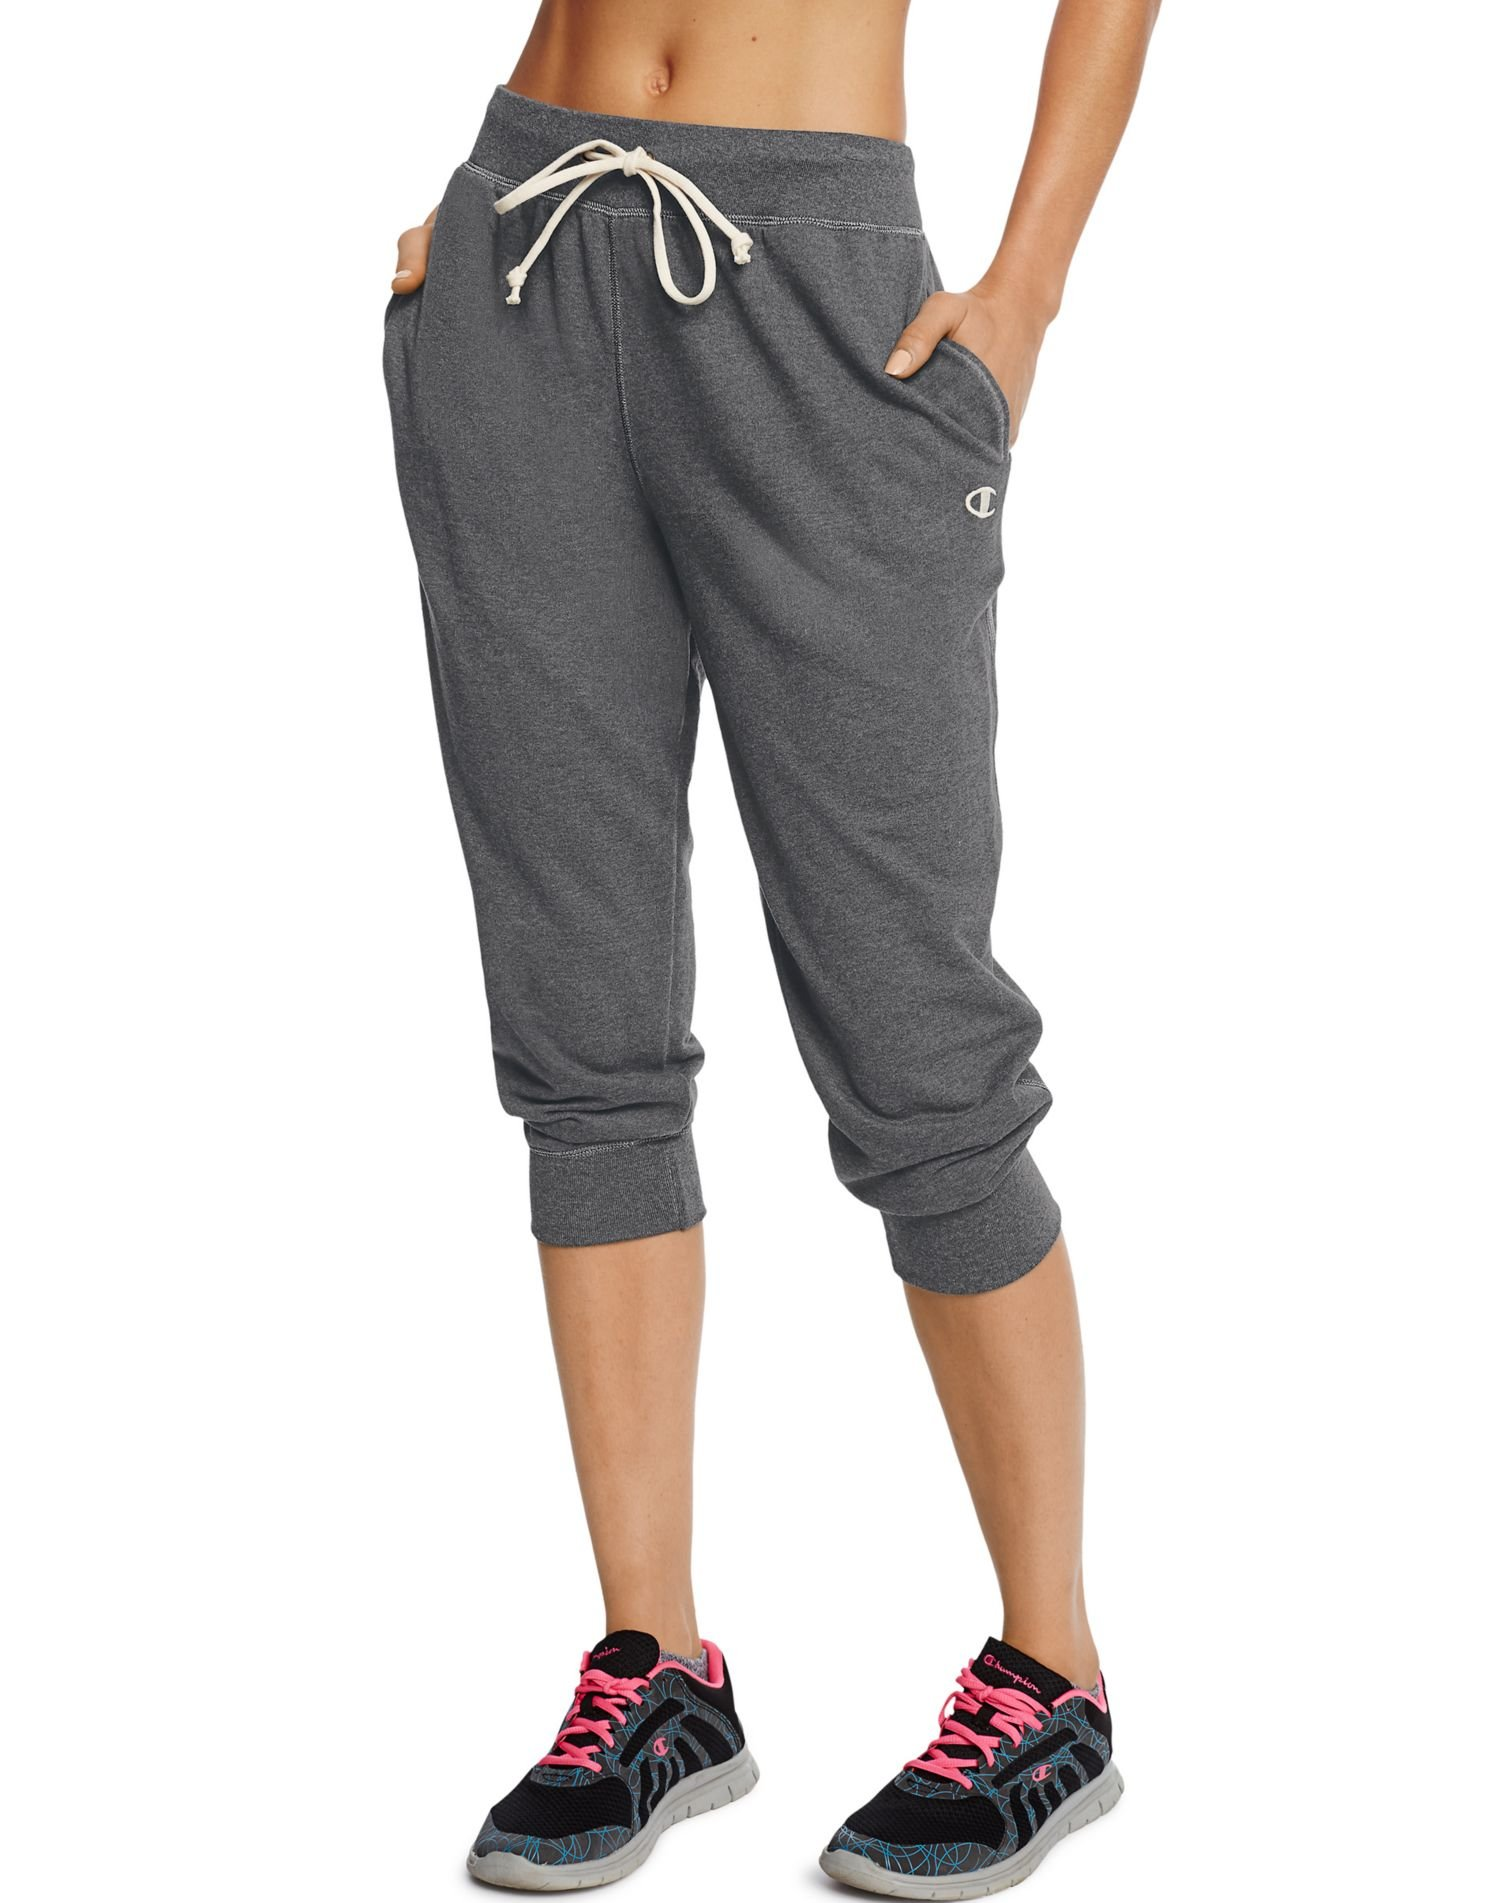 Champion Women's French Terry Jogger Capri, Granite Heather, X Small by Champion (Image #1)